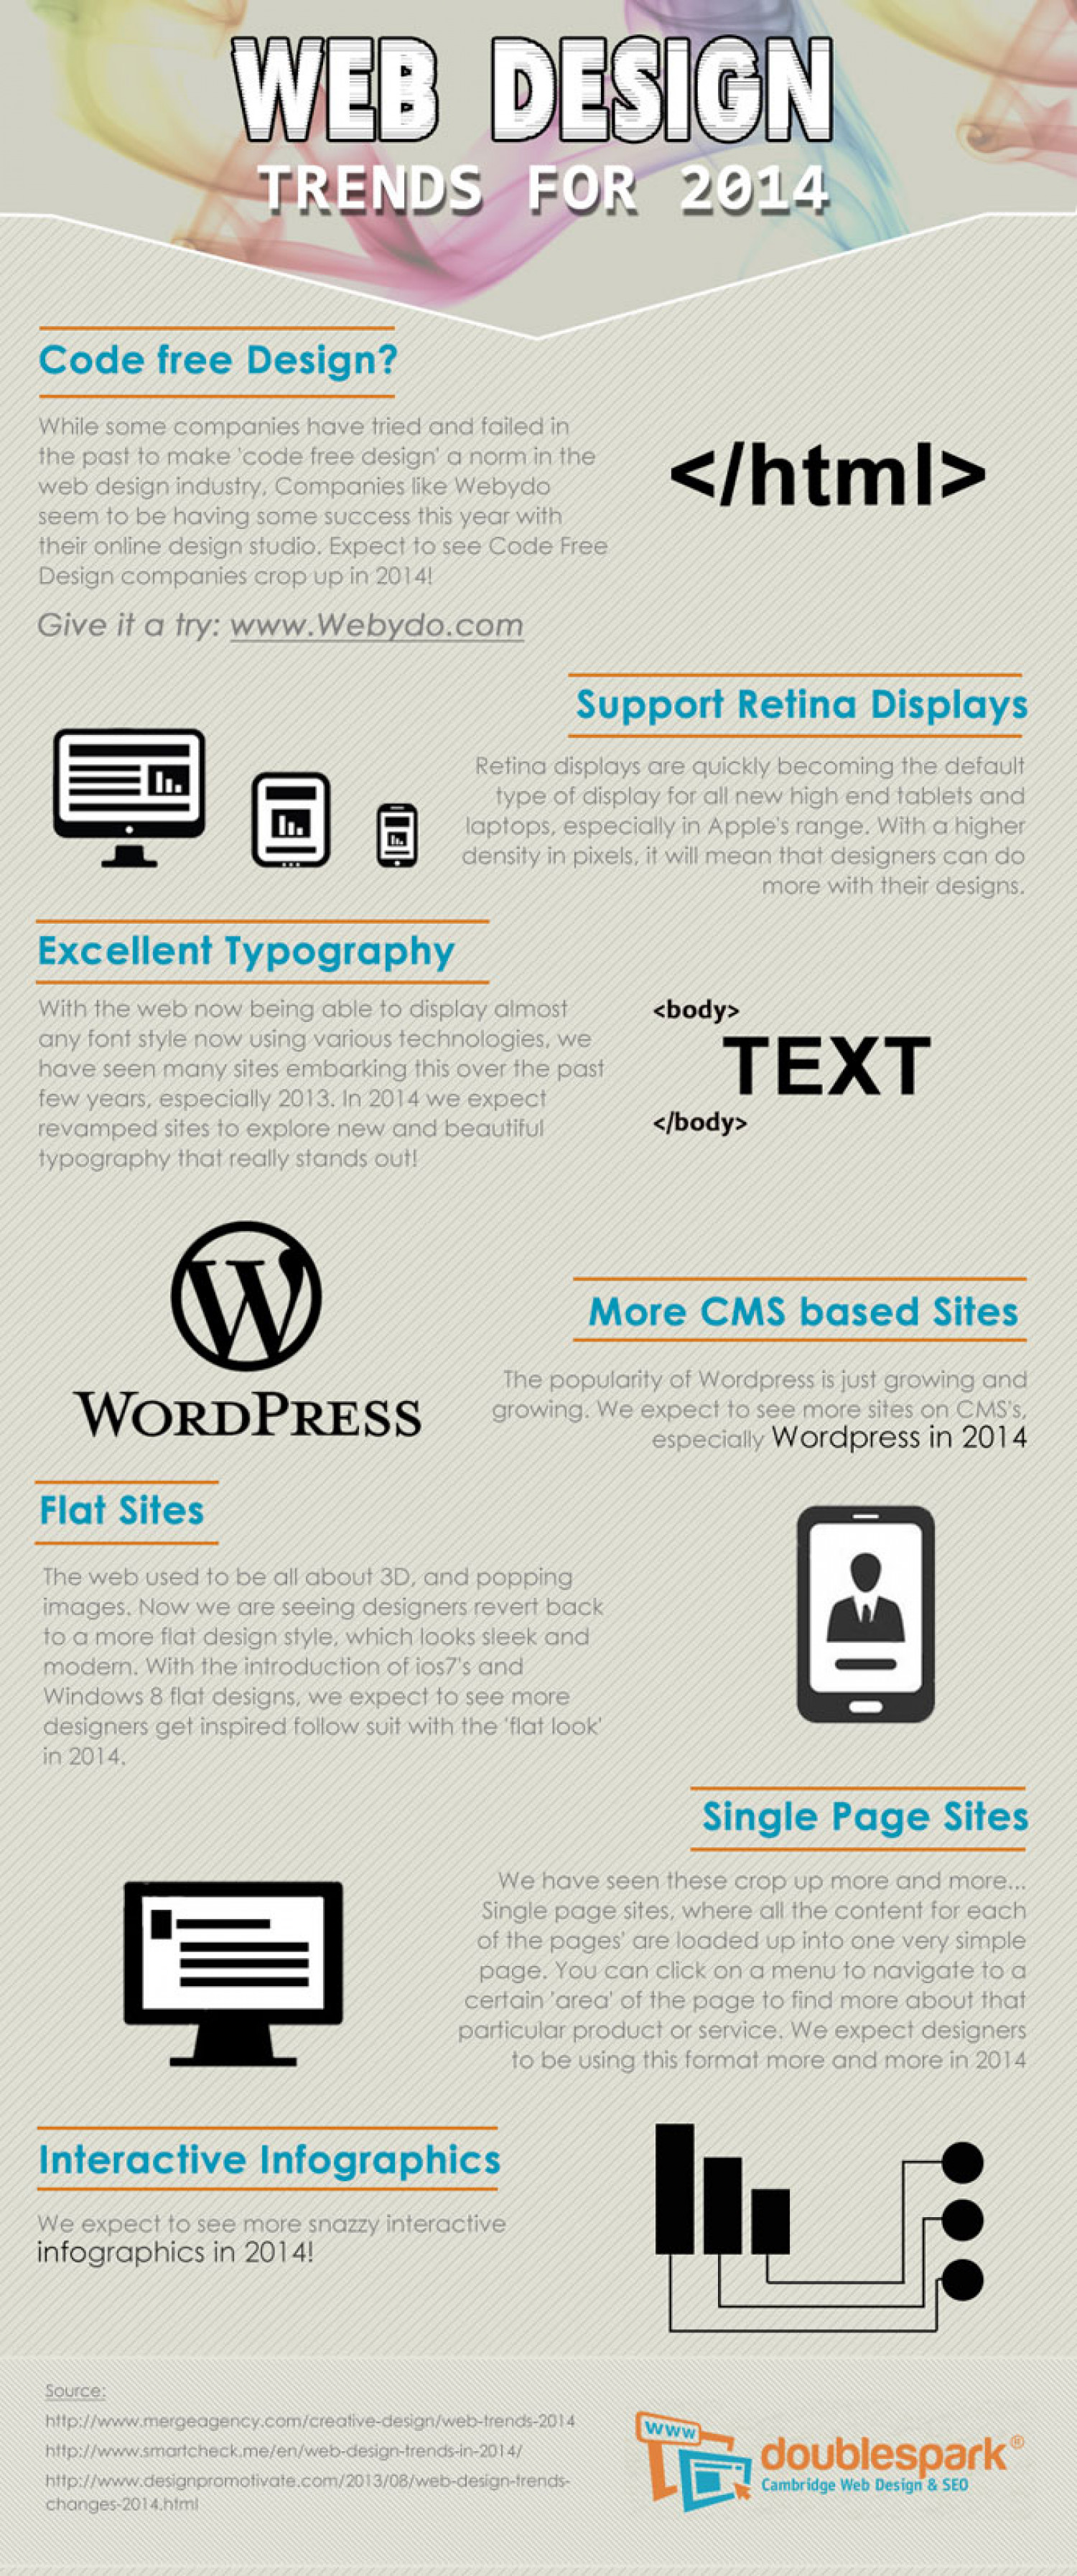 Web design trends for 2014 Infographic